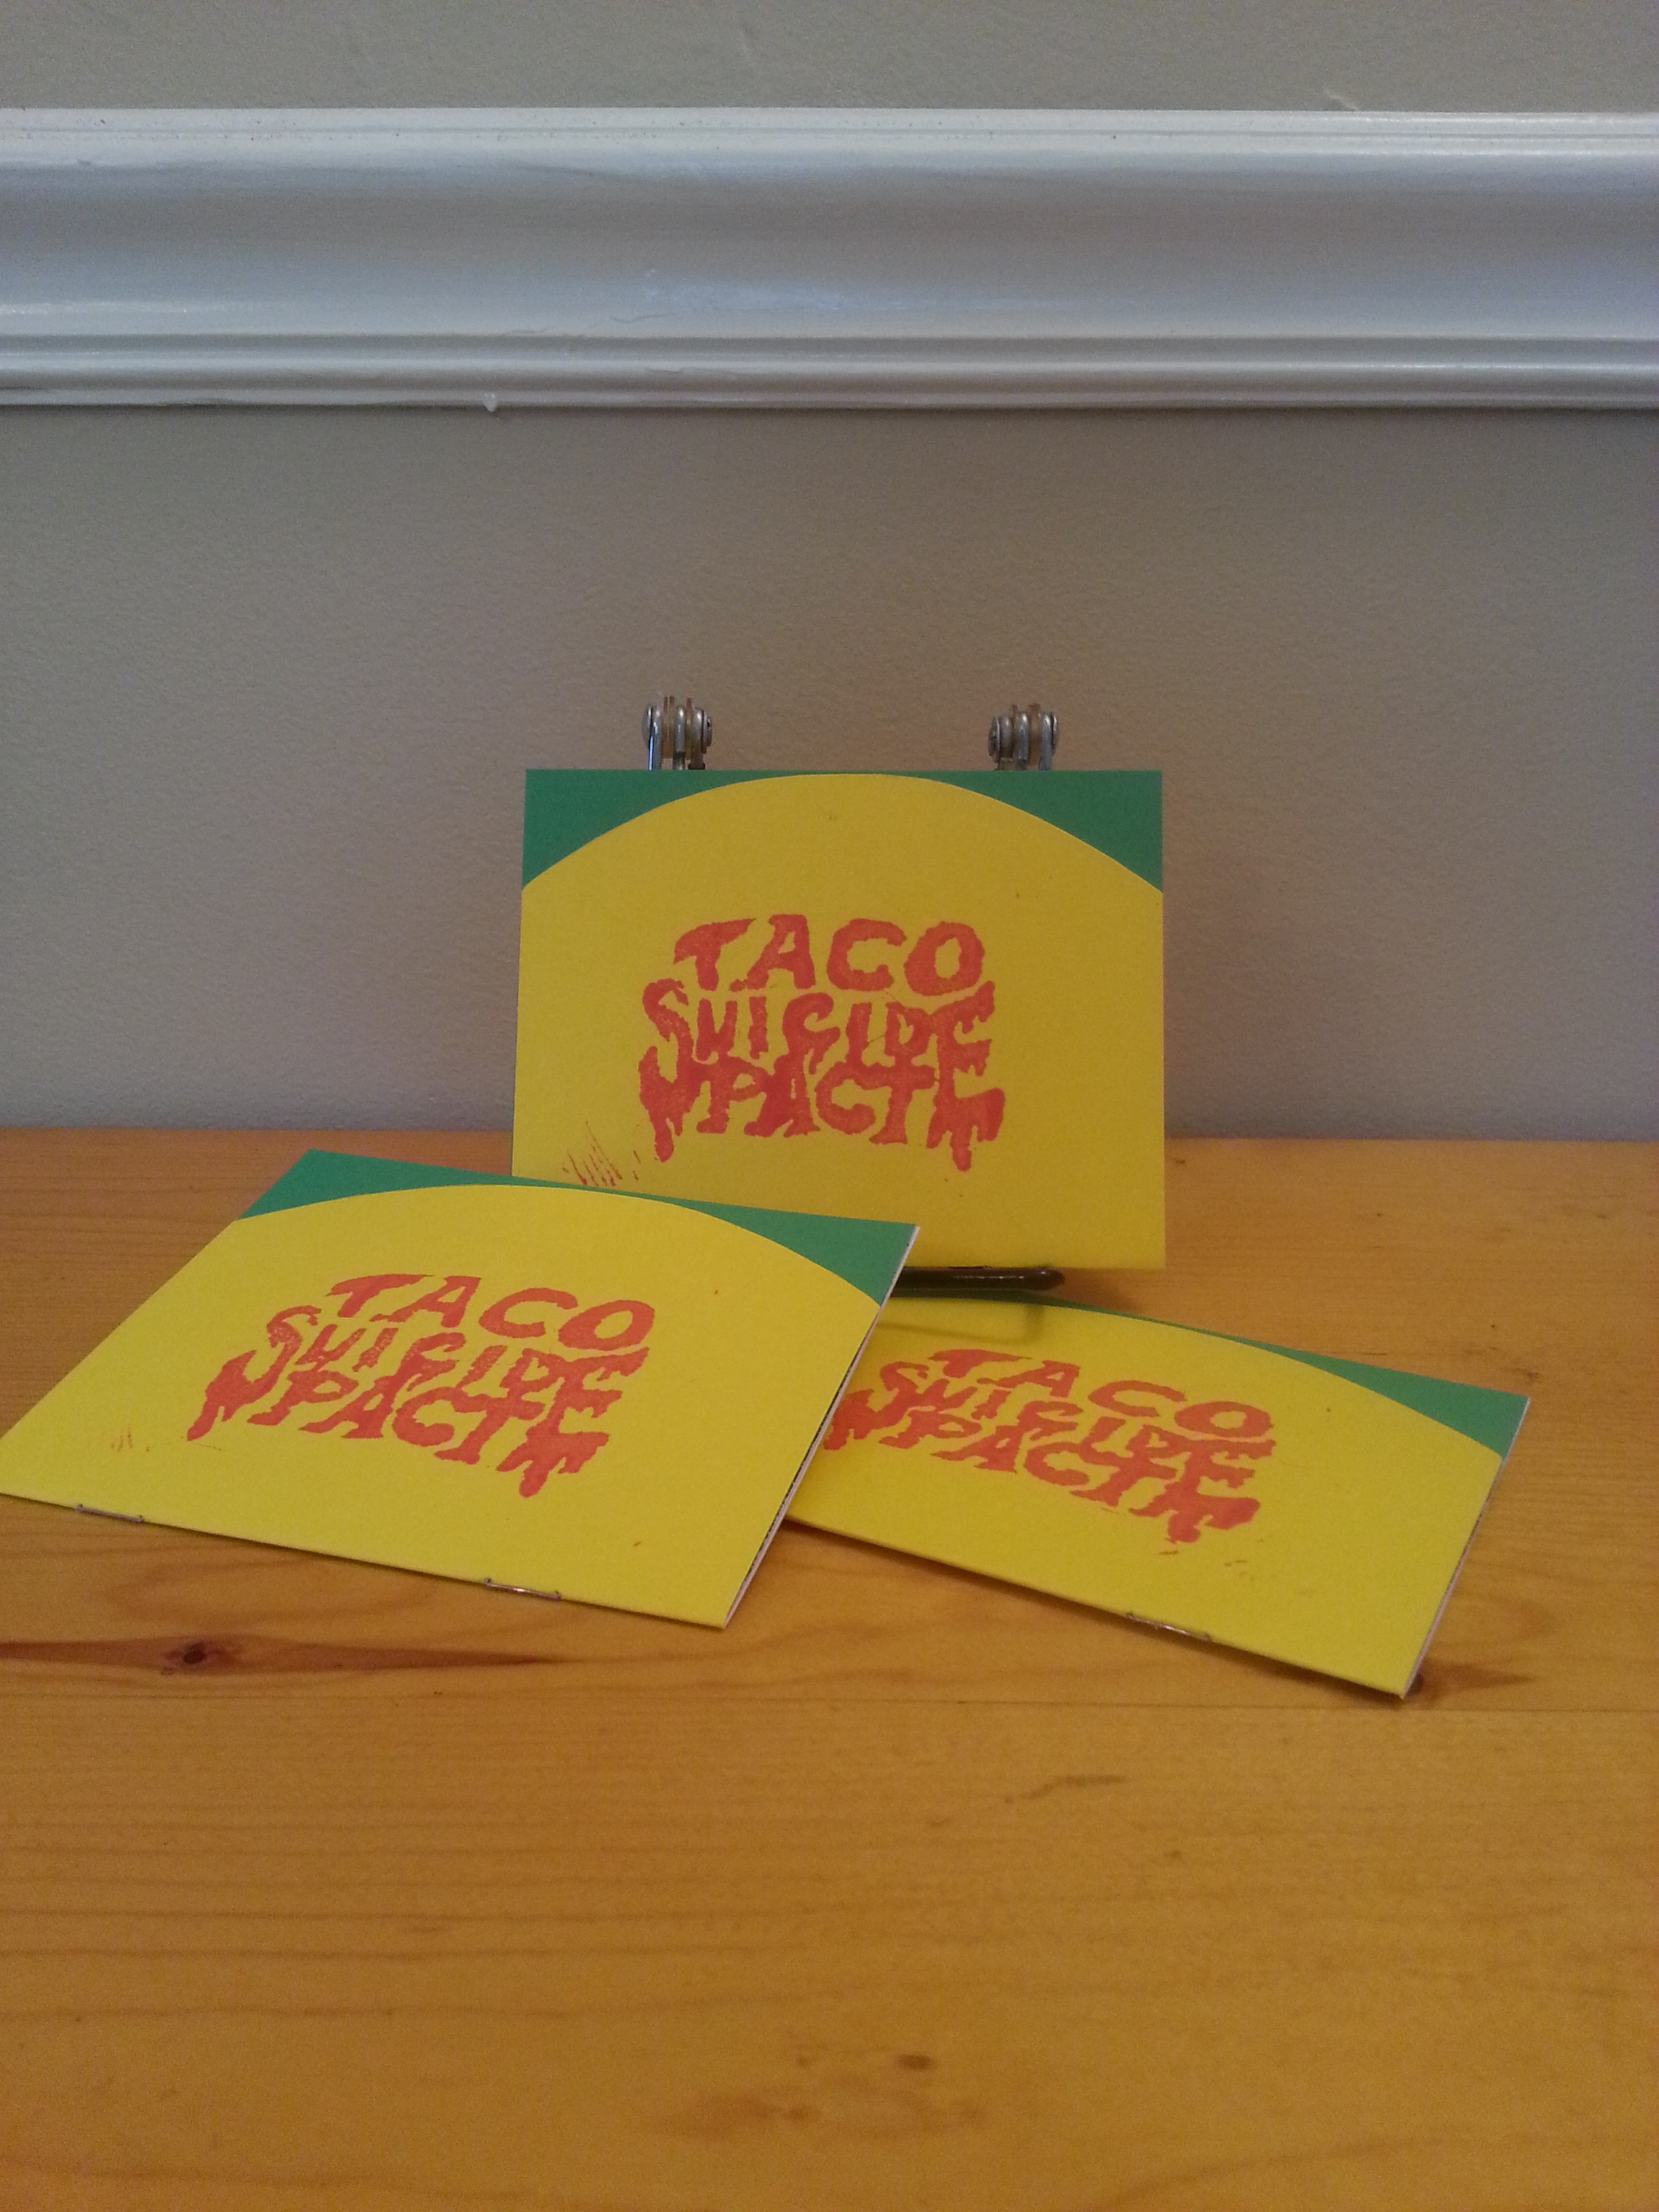 Taco Suicide Pact